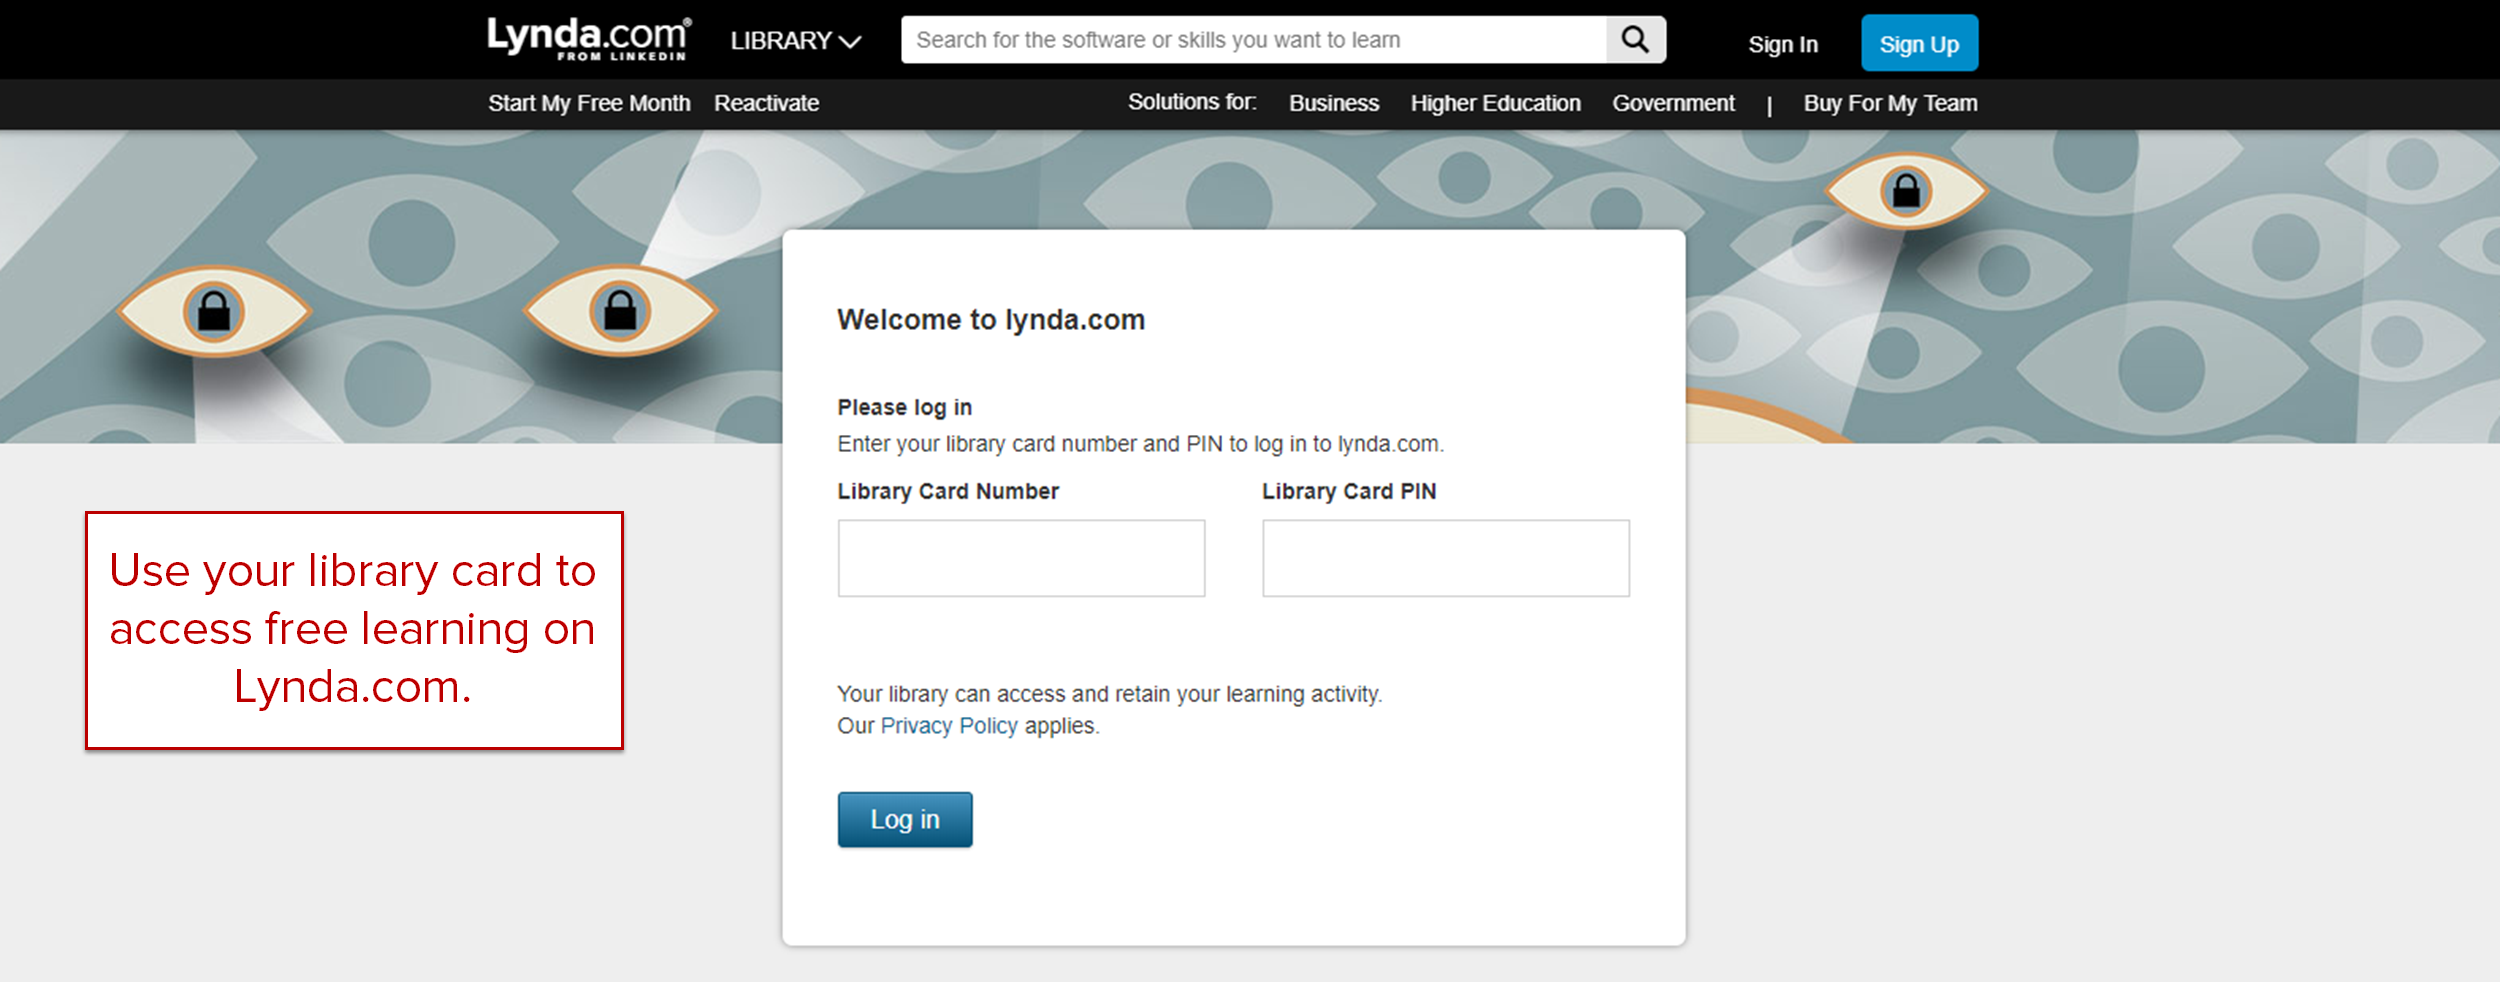 select the image to be directed to lynda.com